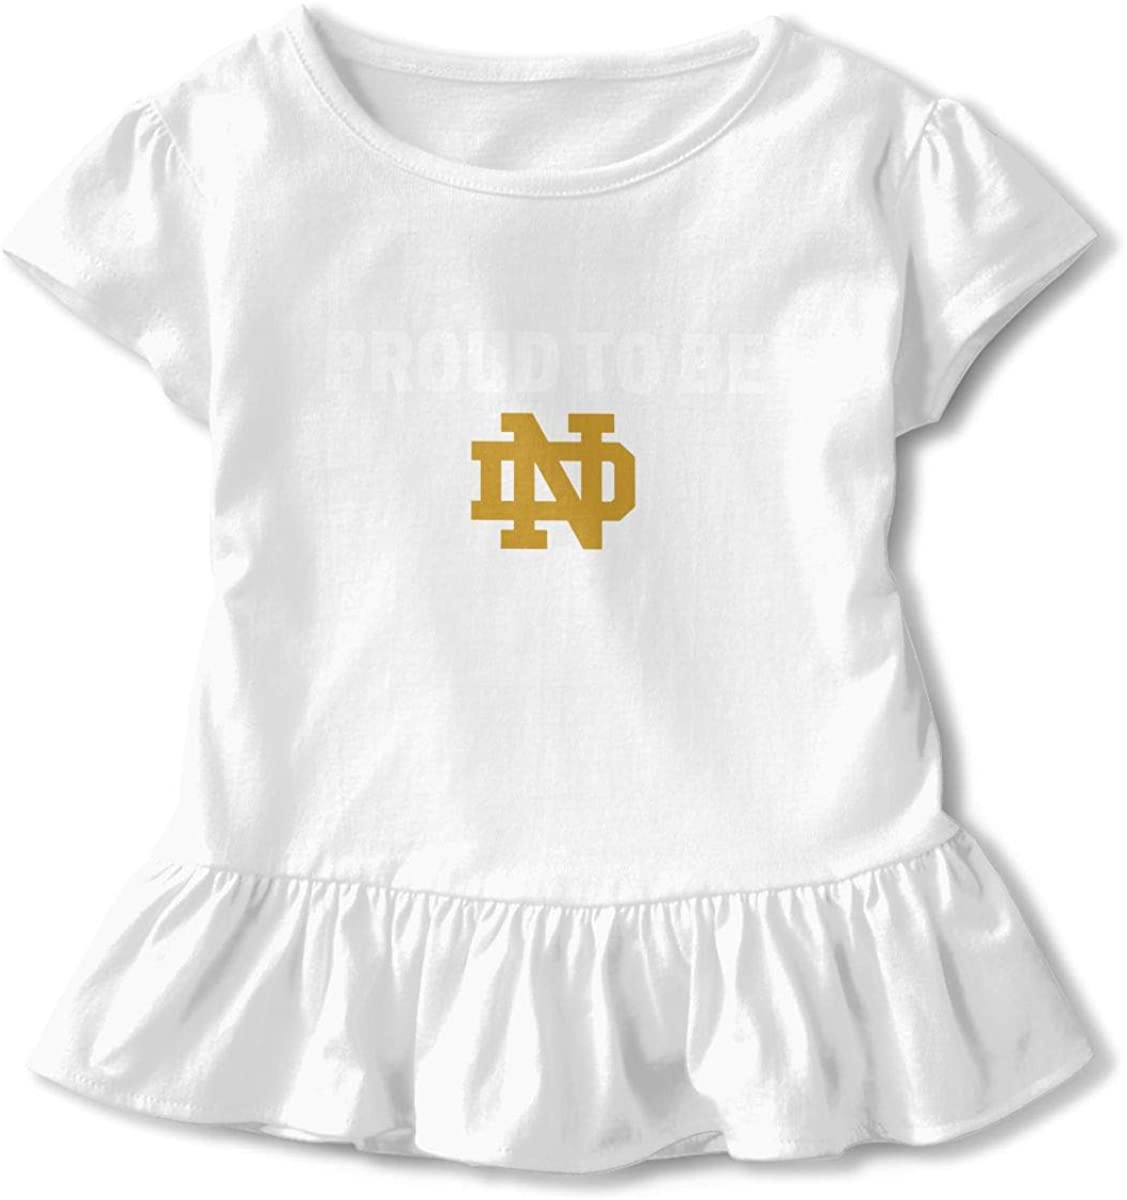 Kids University of Notre Dame Nd Logo Toddler Short Sleeve T Shirt Children Girls Cotton Graphic Tee Soft Dress (2-6T)